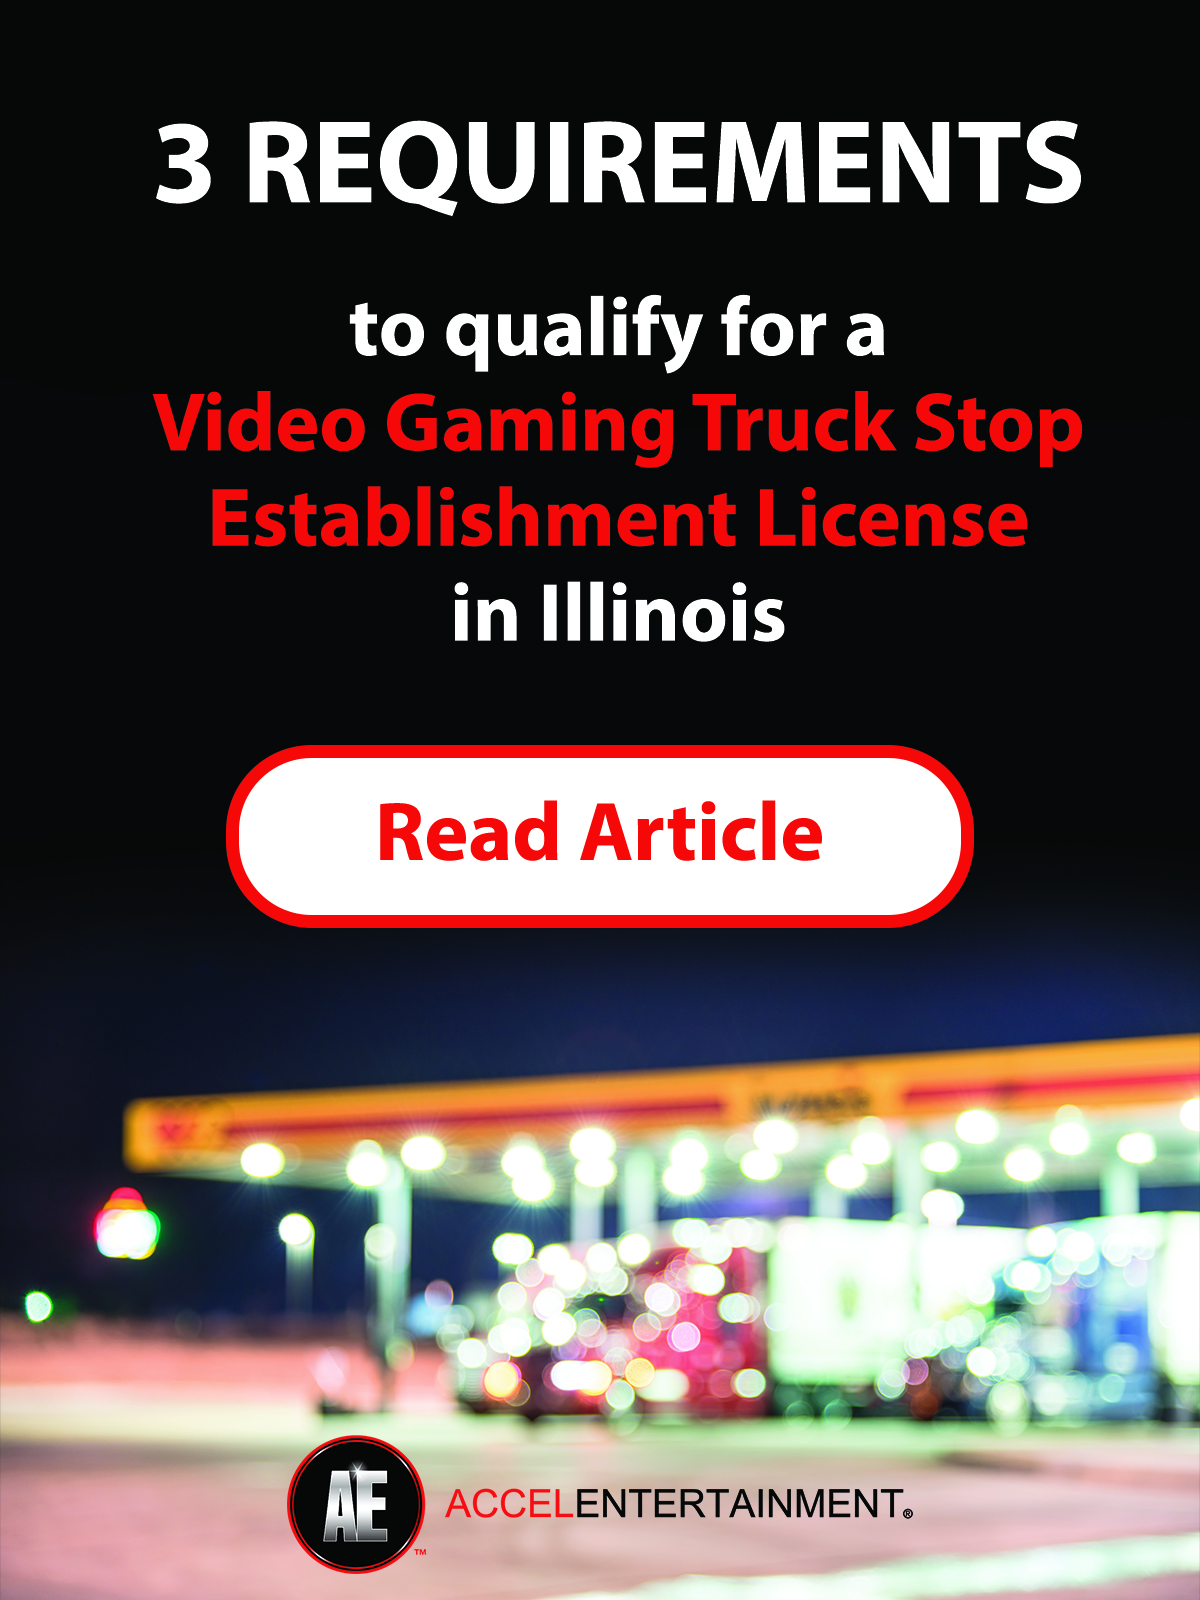 3 Requirements to Qualify for a Video Gaming Establishment License in Illinois